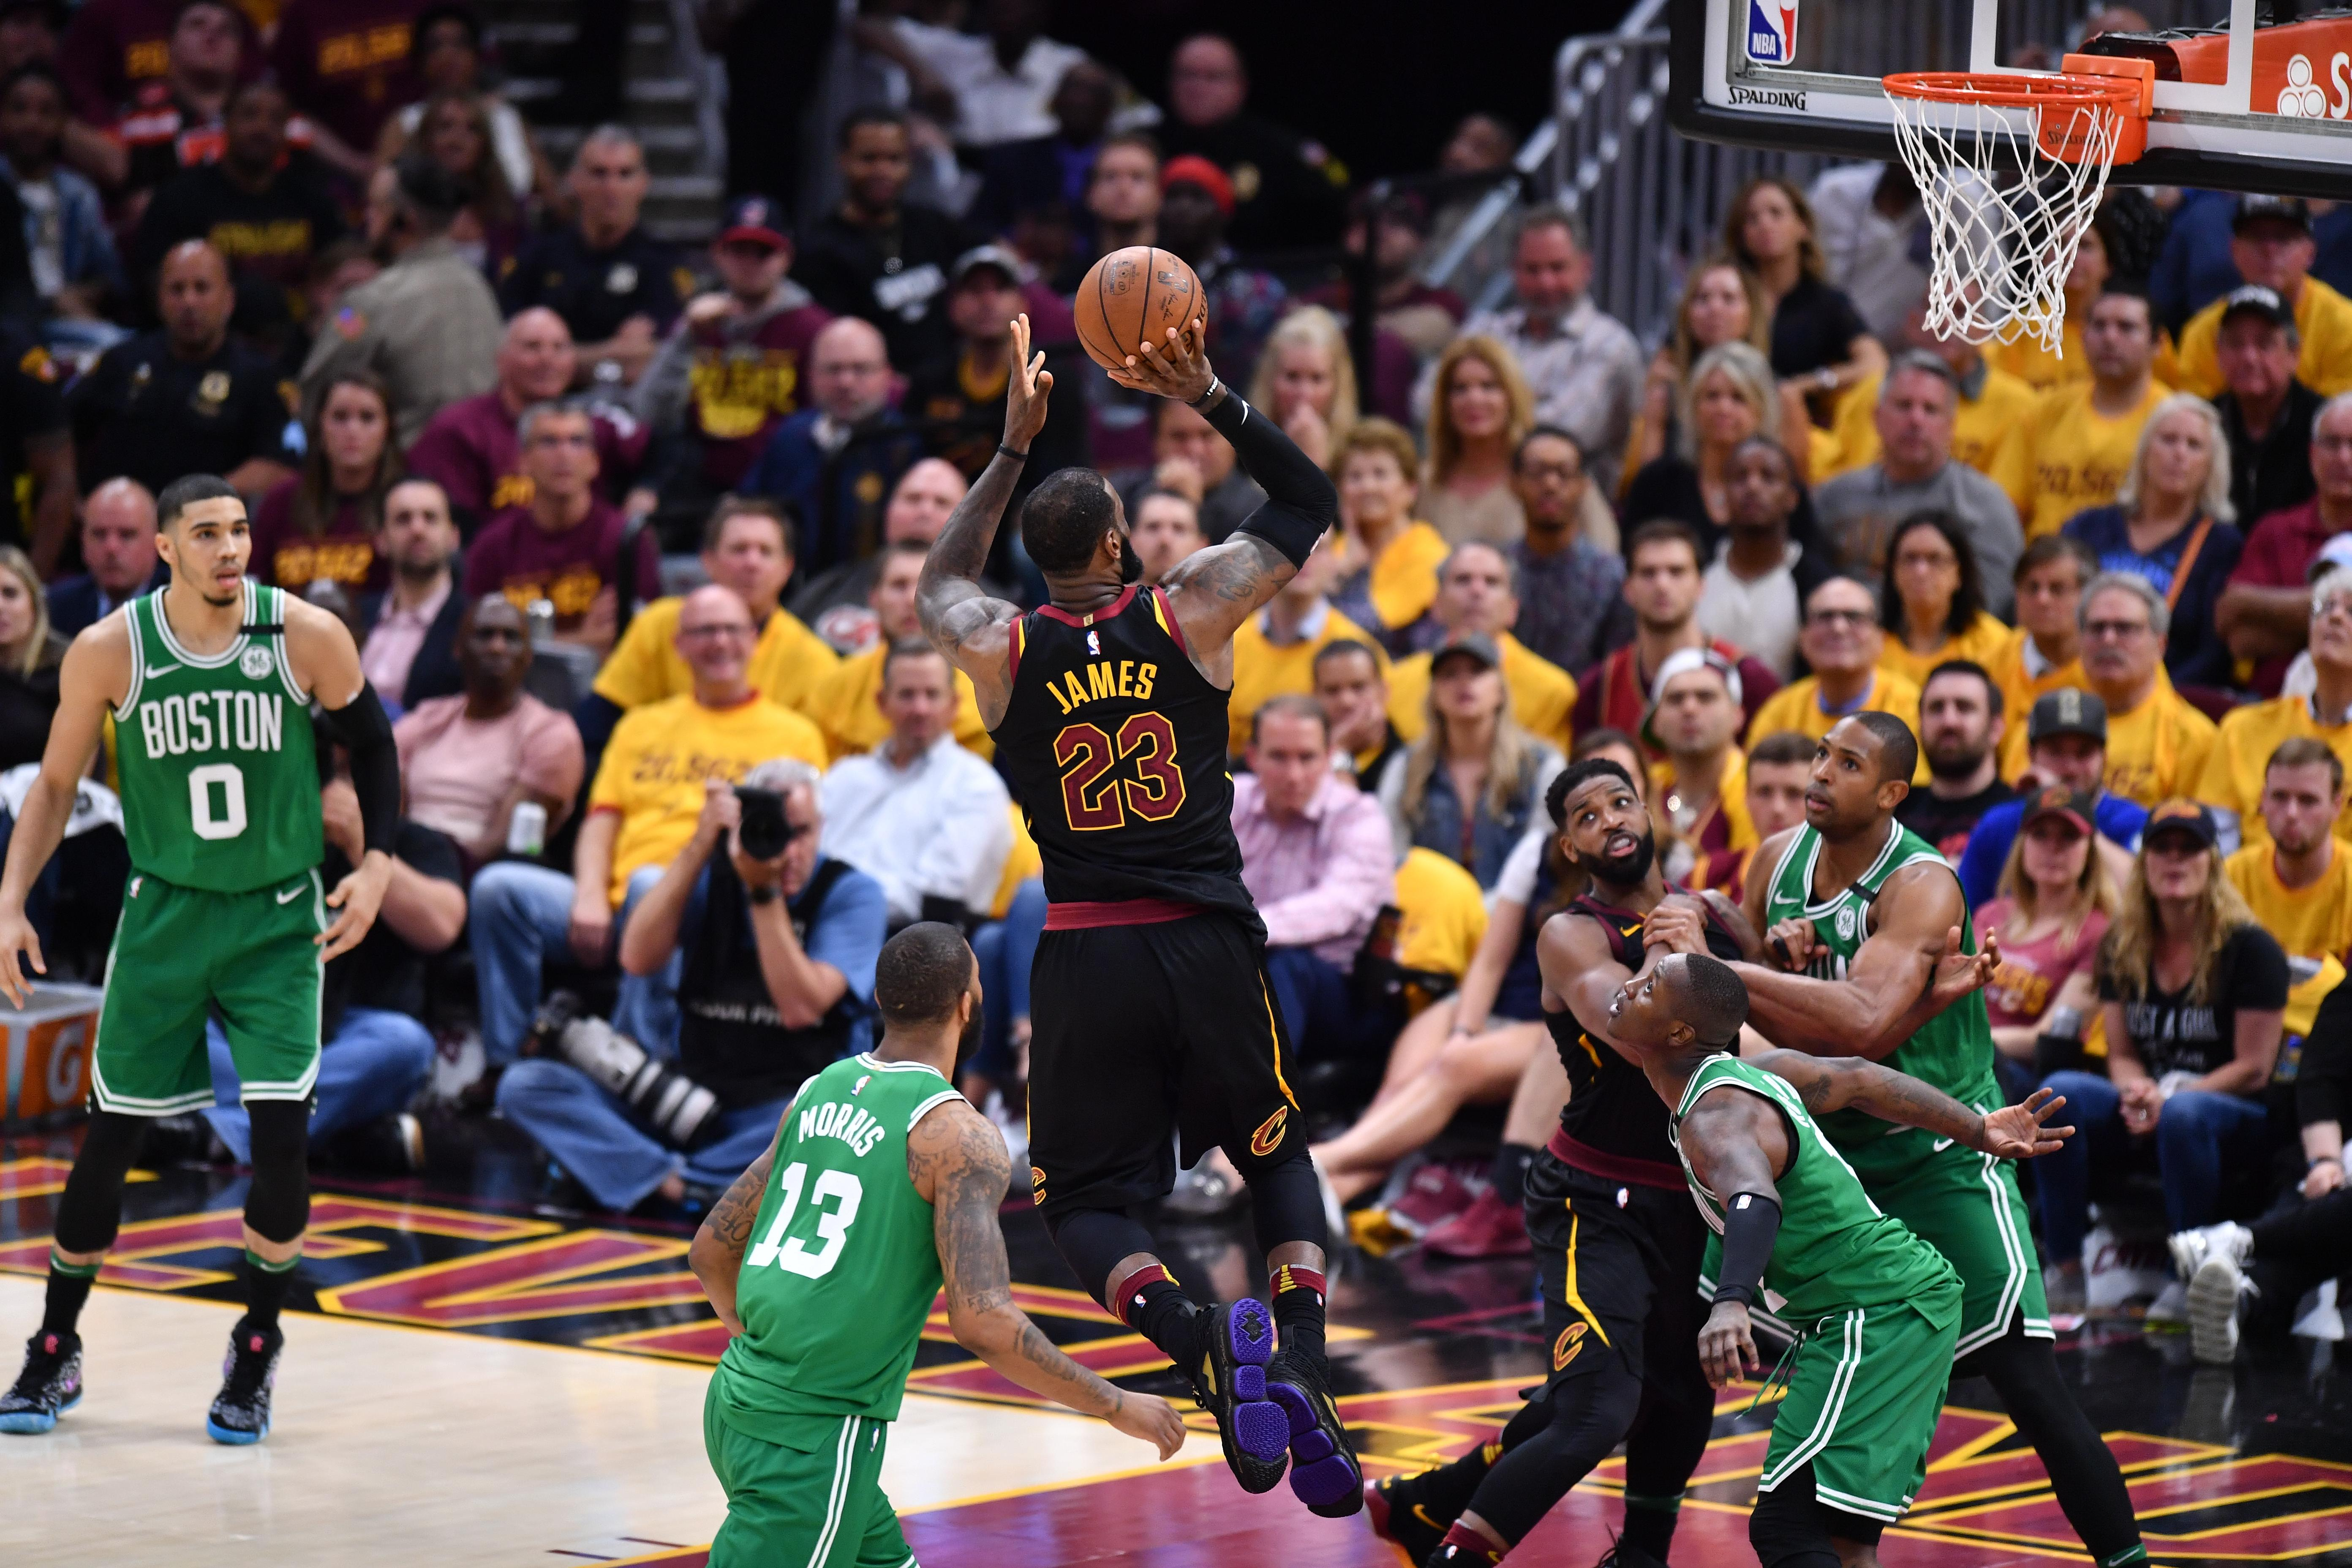 Cleveland Cavaliers vs. Boston Celtics Game 5: Betting Odds, Start Time, TV Channel For 2018 ECF